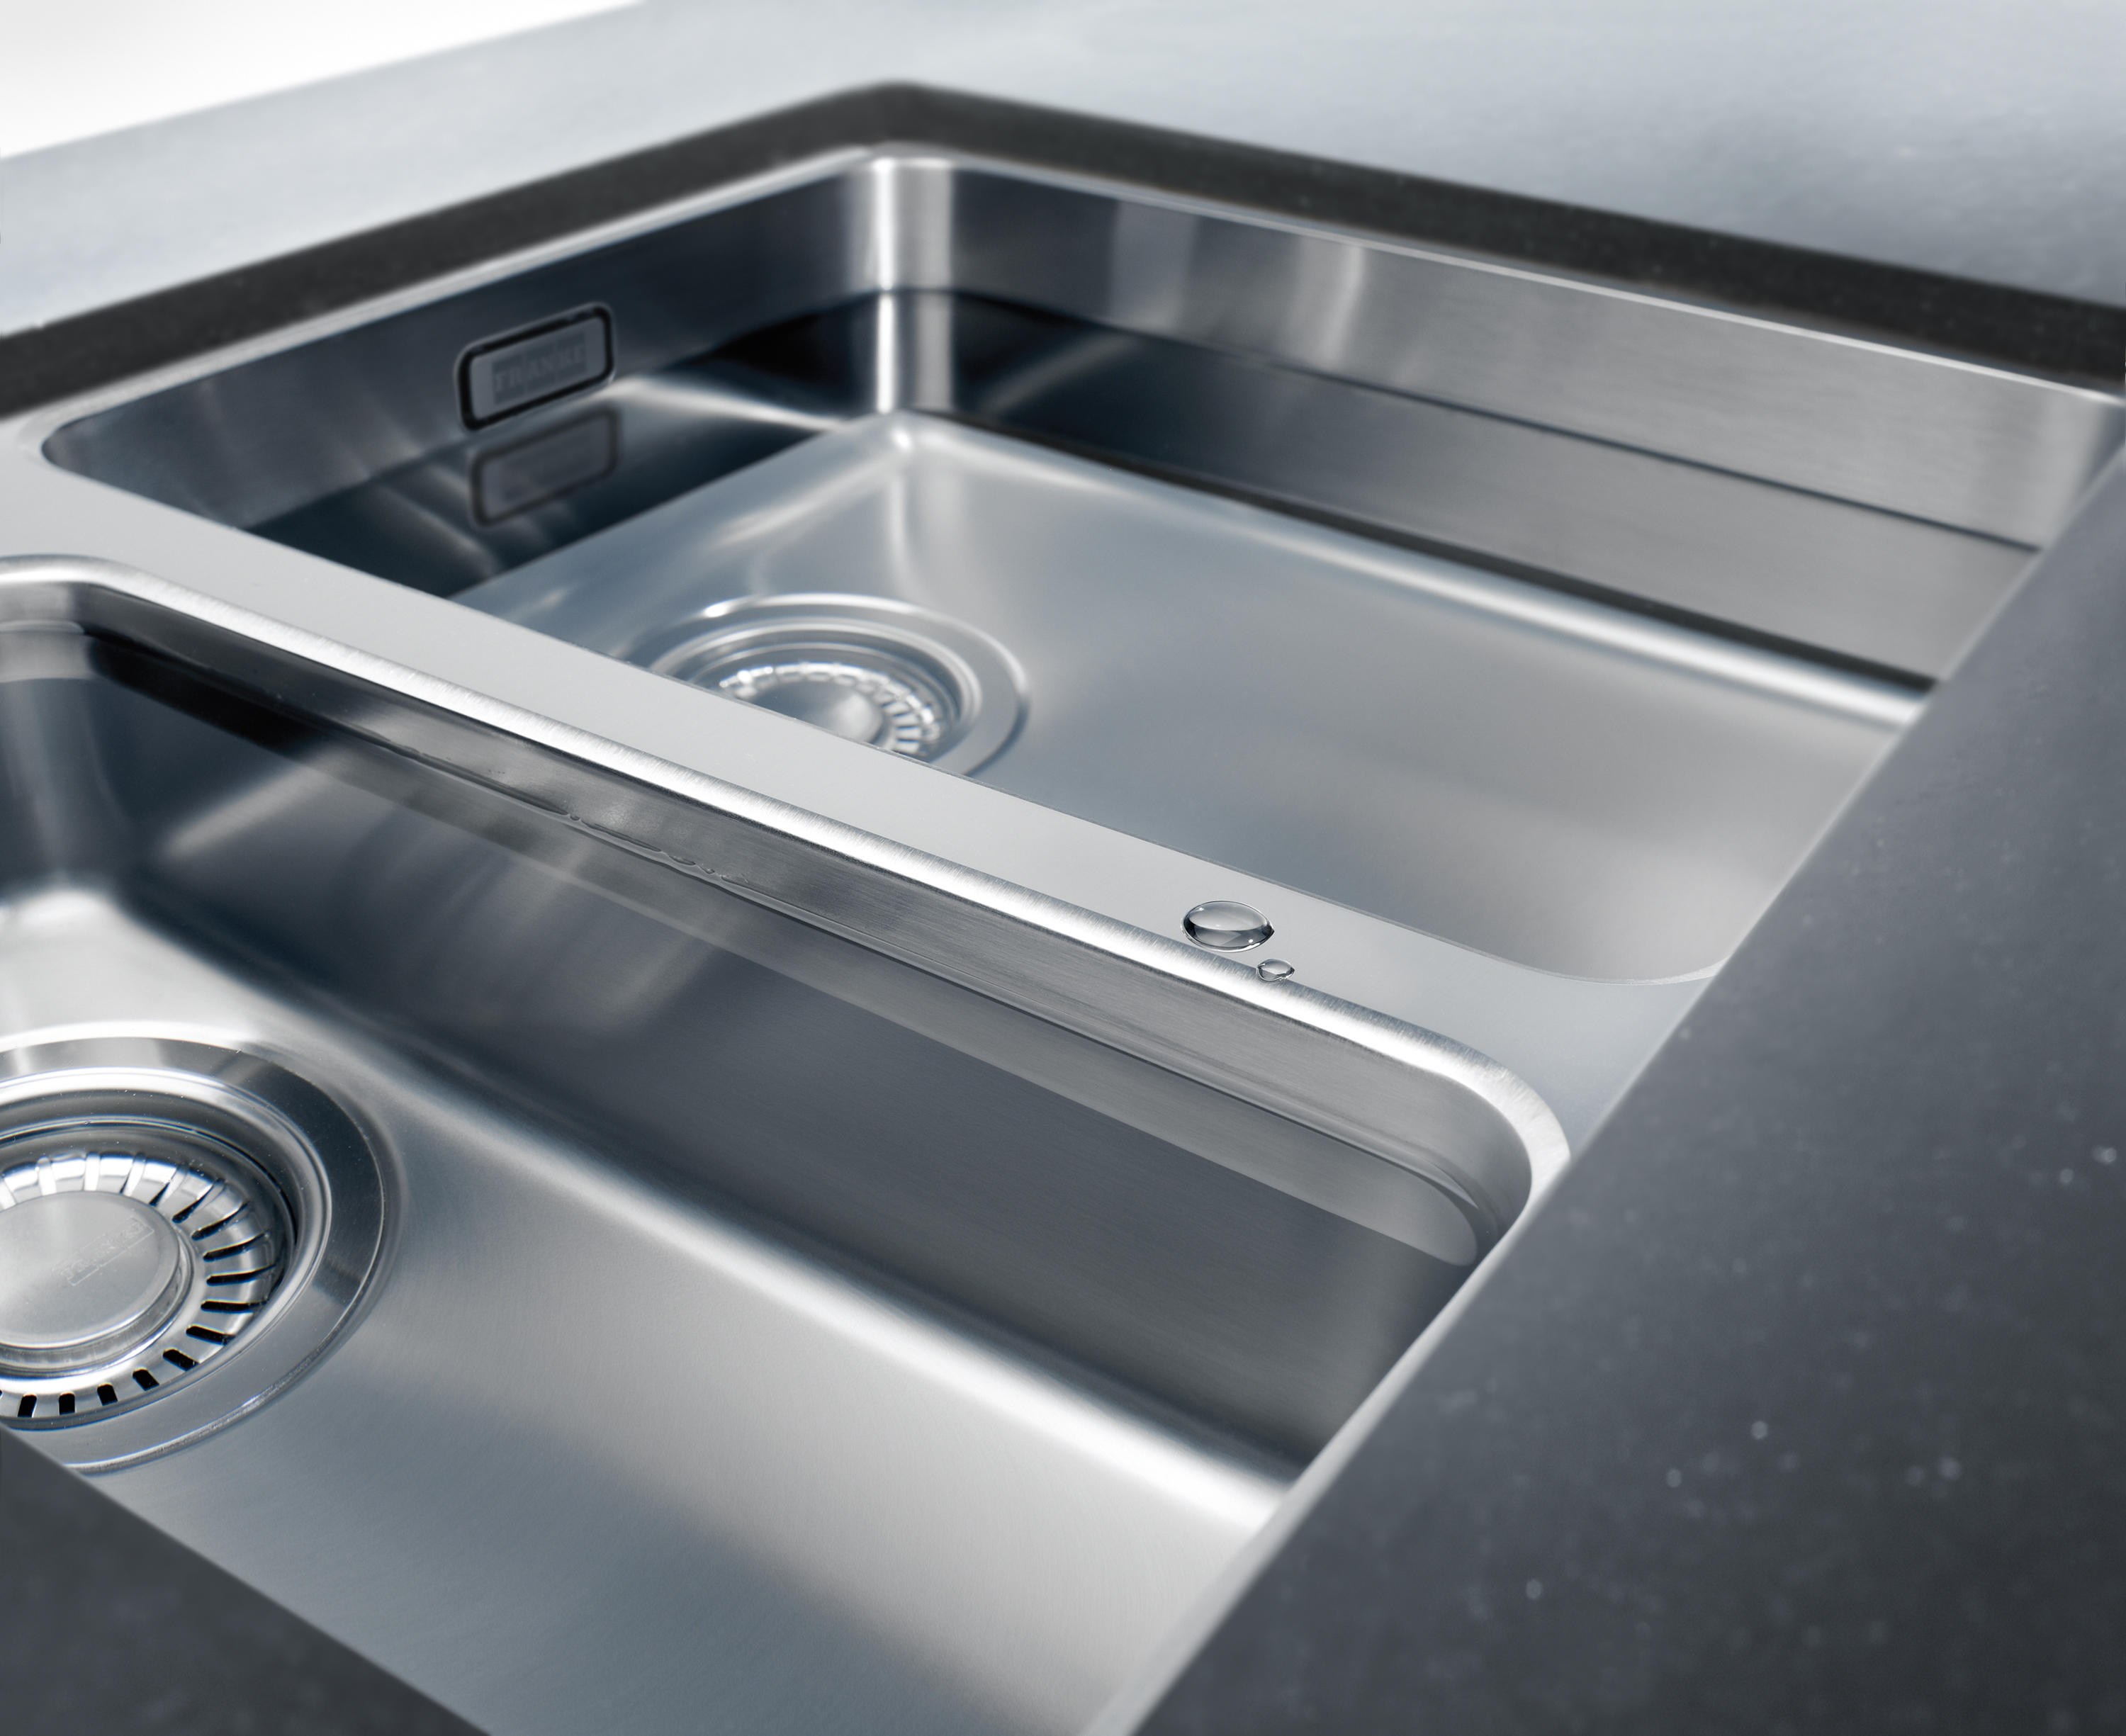 Kubus sink kbx 110 55 stainless steel by franke kitchen systems